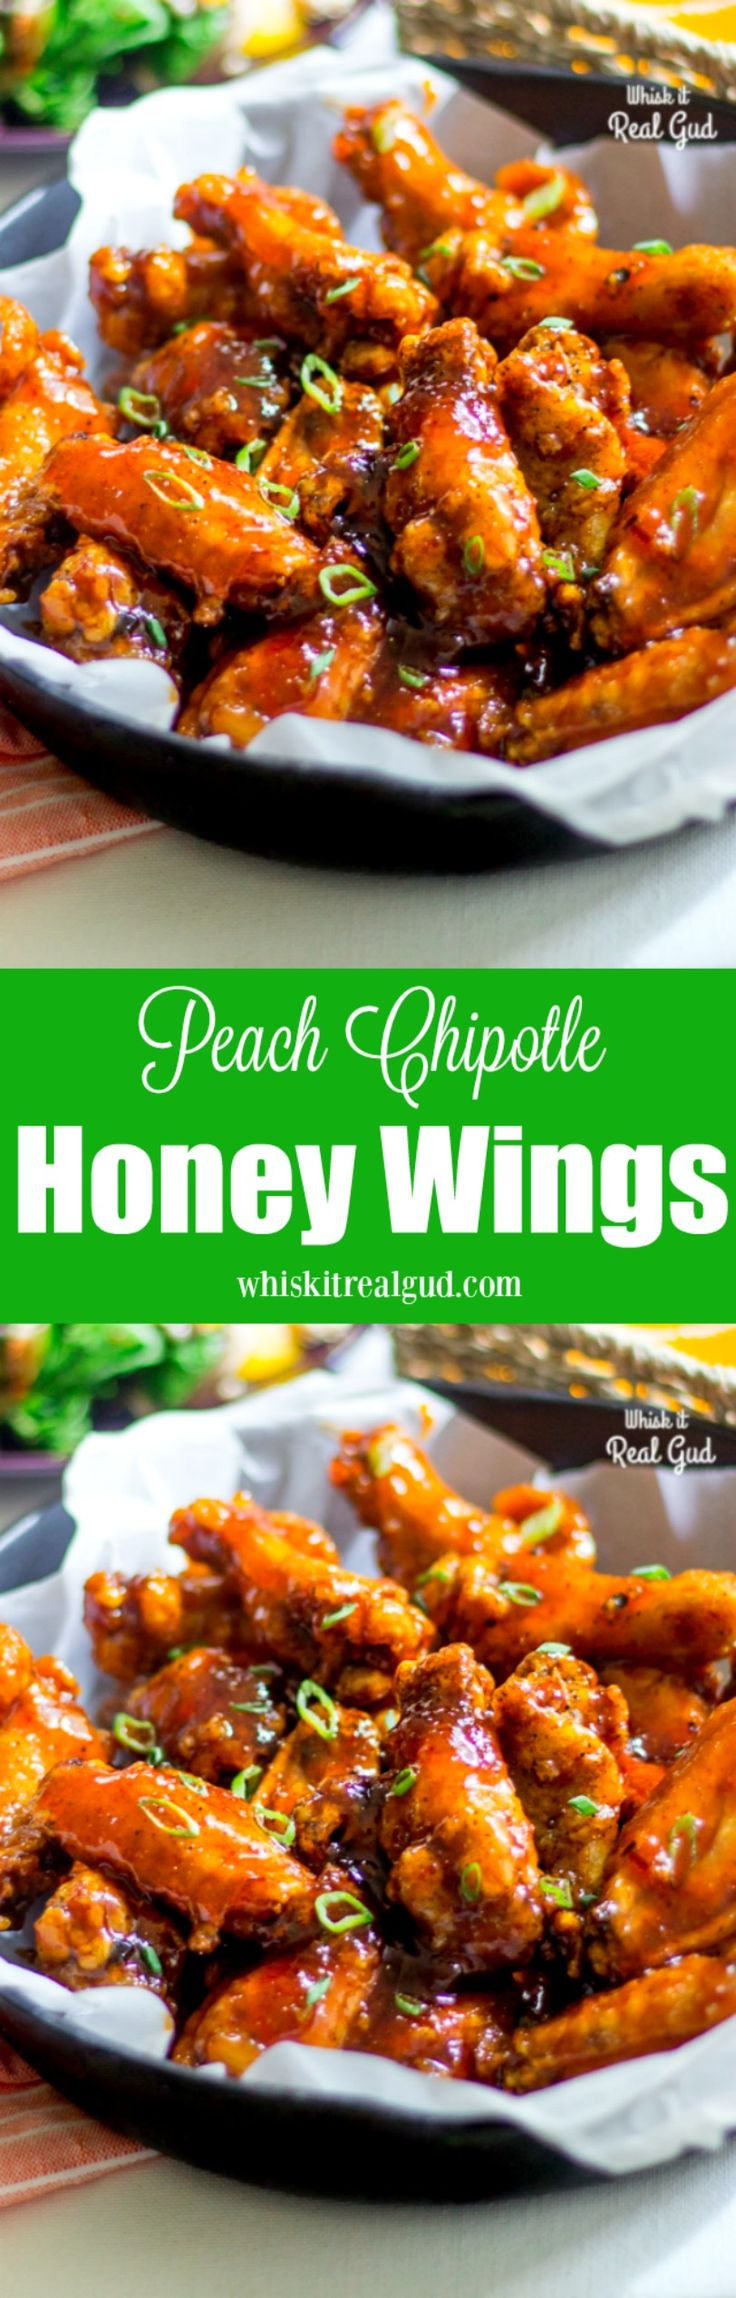 Peach Chipotle Honey Wings will be loved by your entire family and friends! These sticky peachy, crispy, sweet and tangy wings with a bit of…